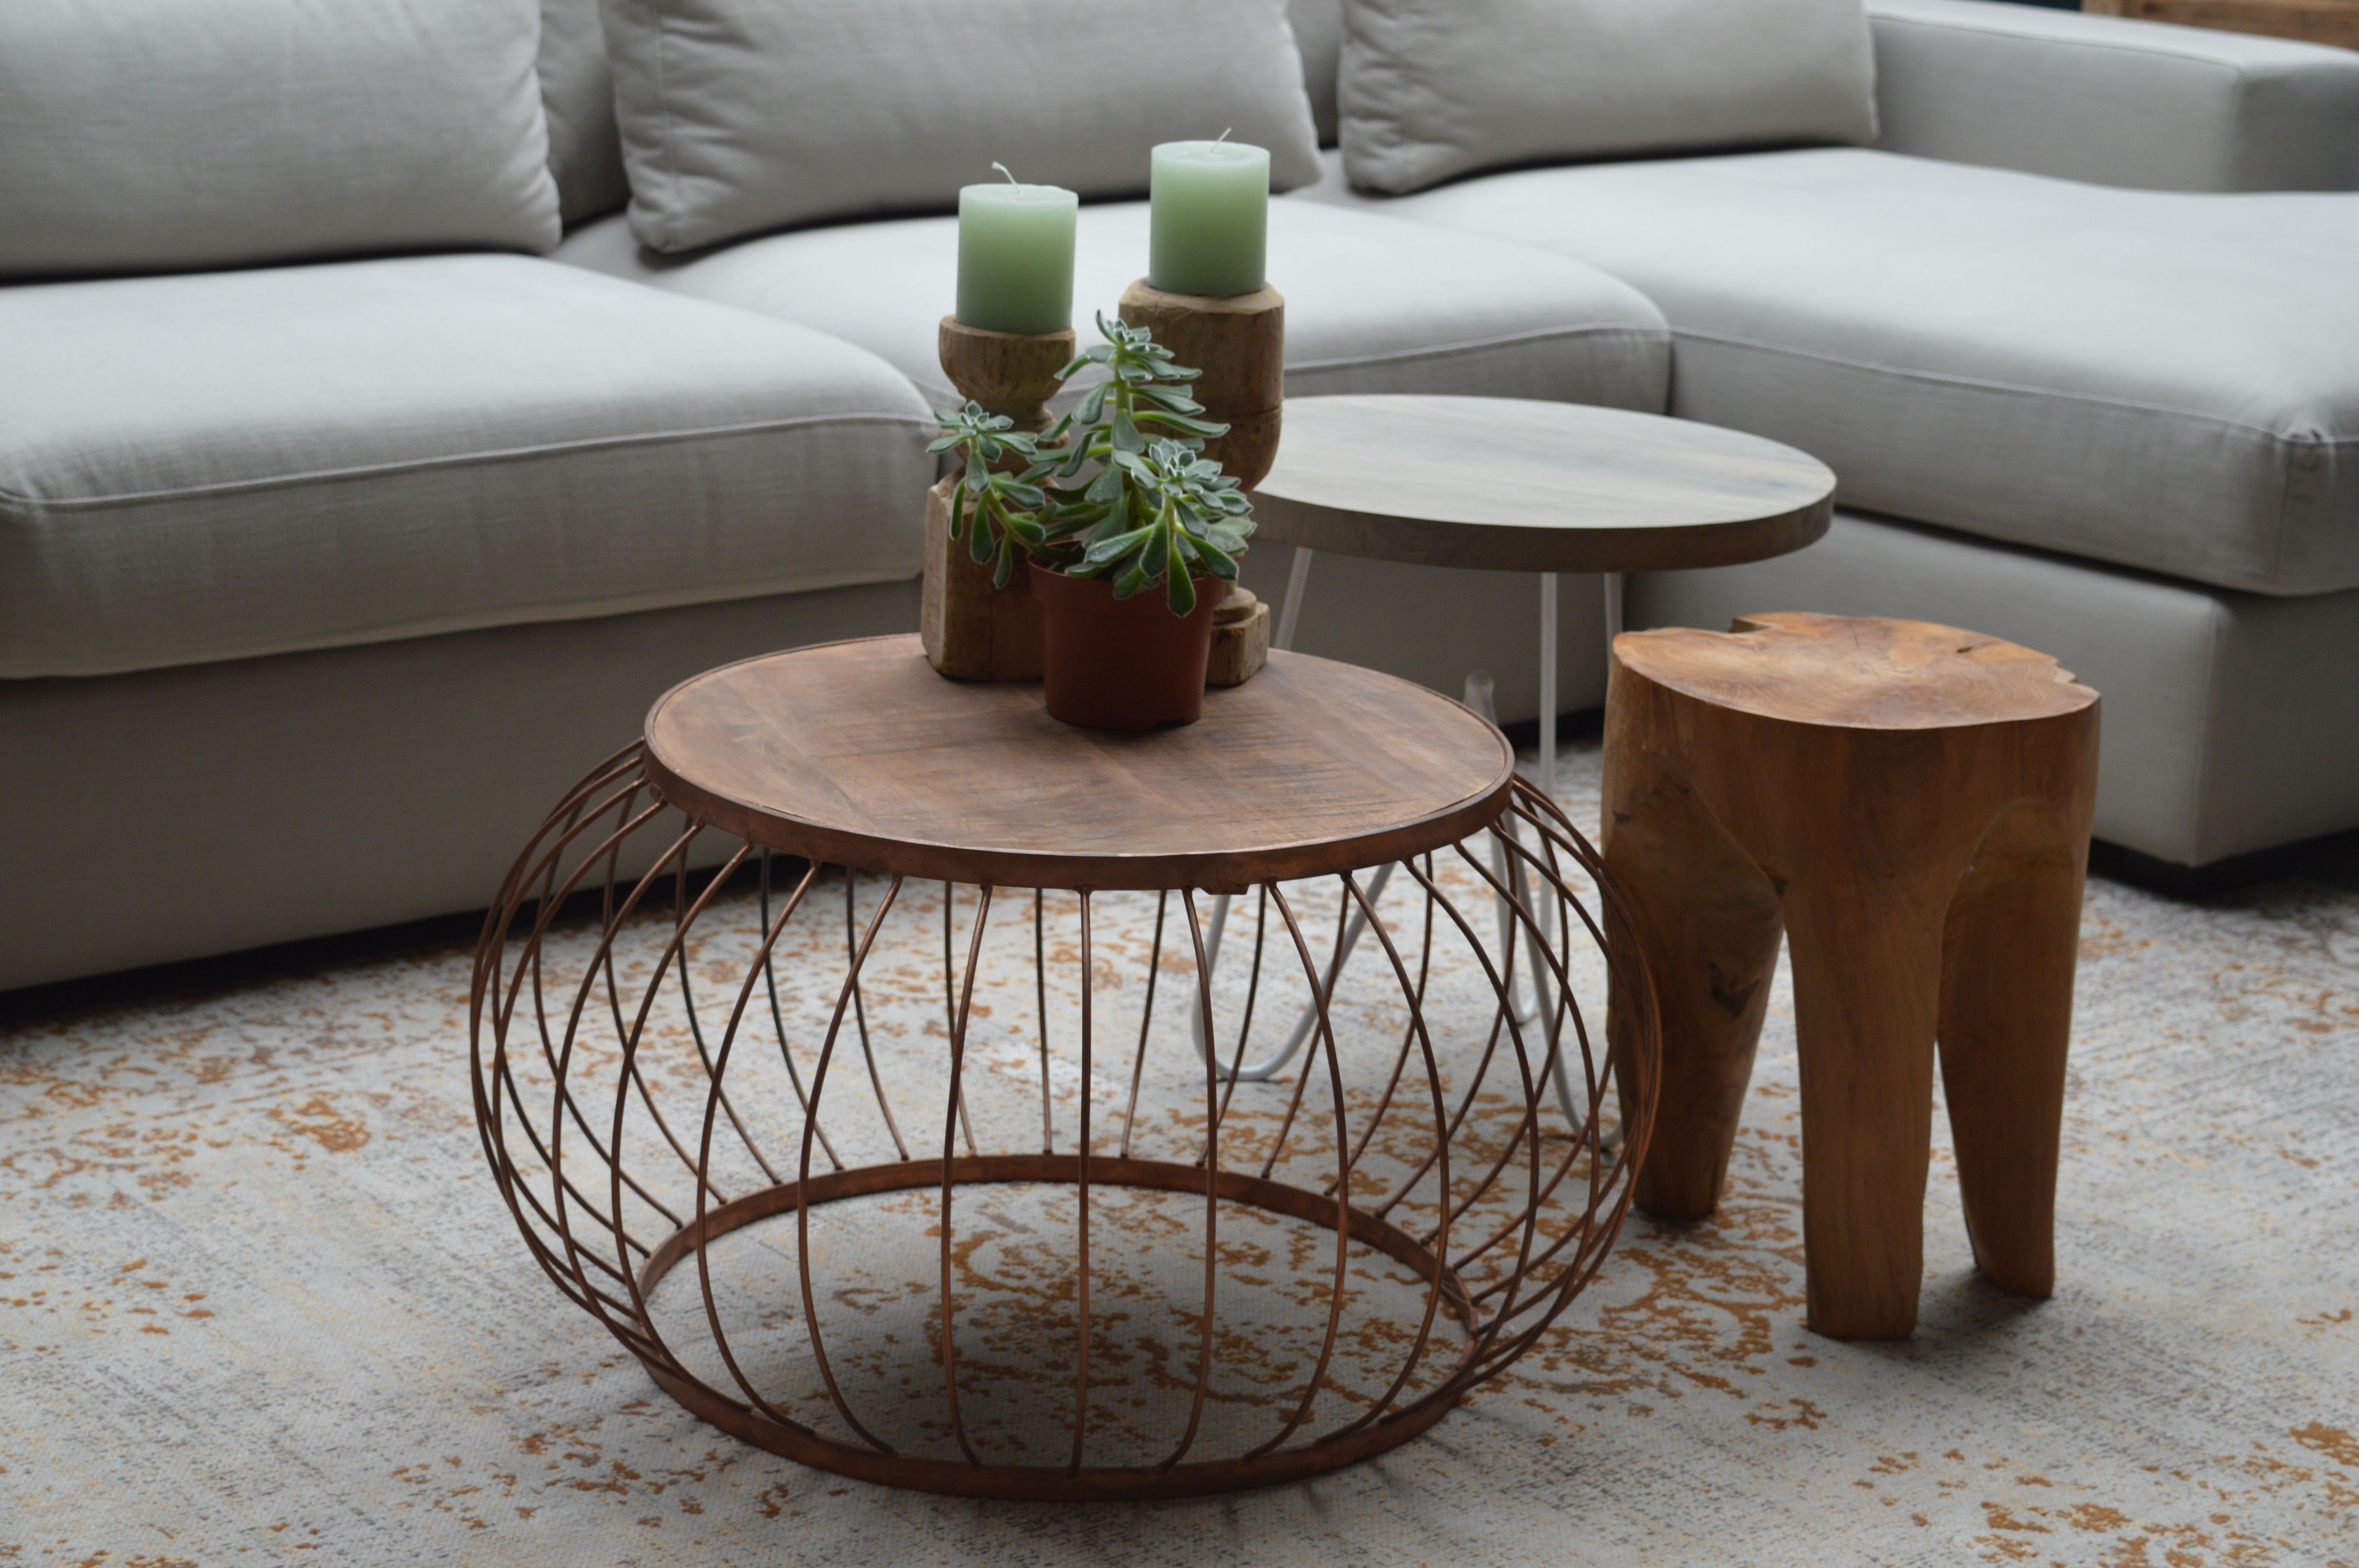 Design Couchtisch Mangoholz Sophie Pin By Steffi On Room Ideas Pinterest Furniture Room And Interior